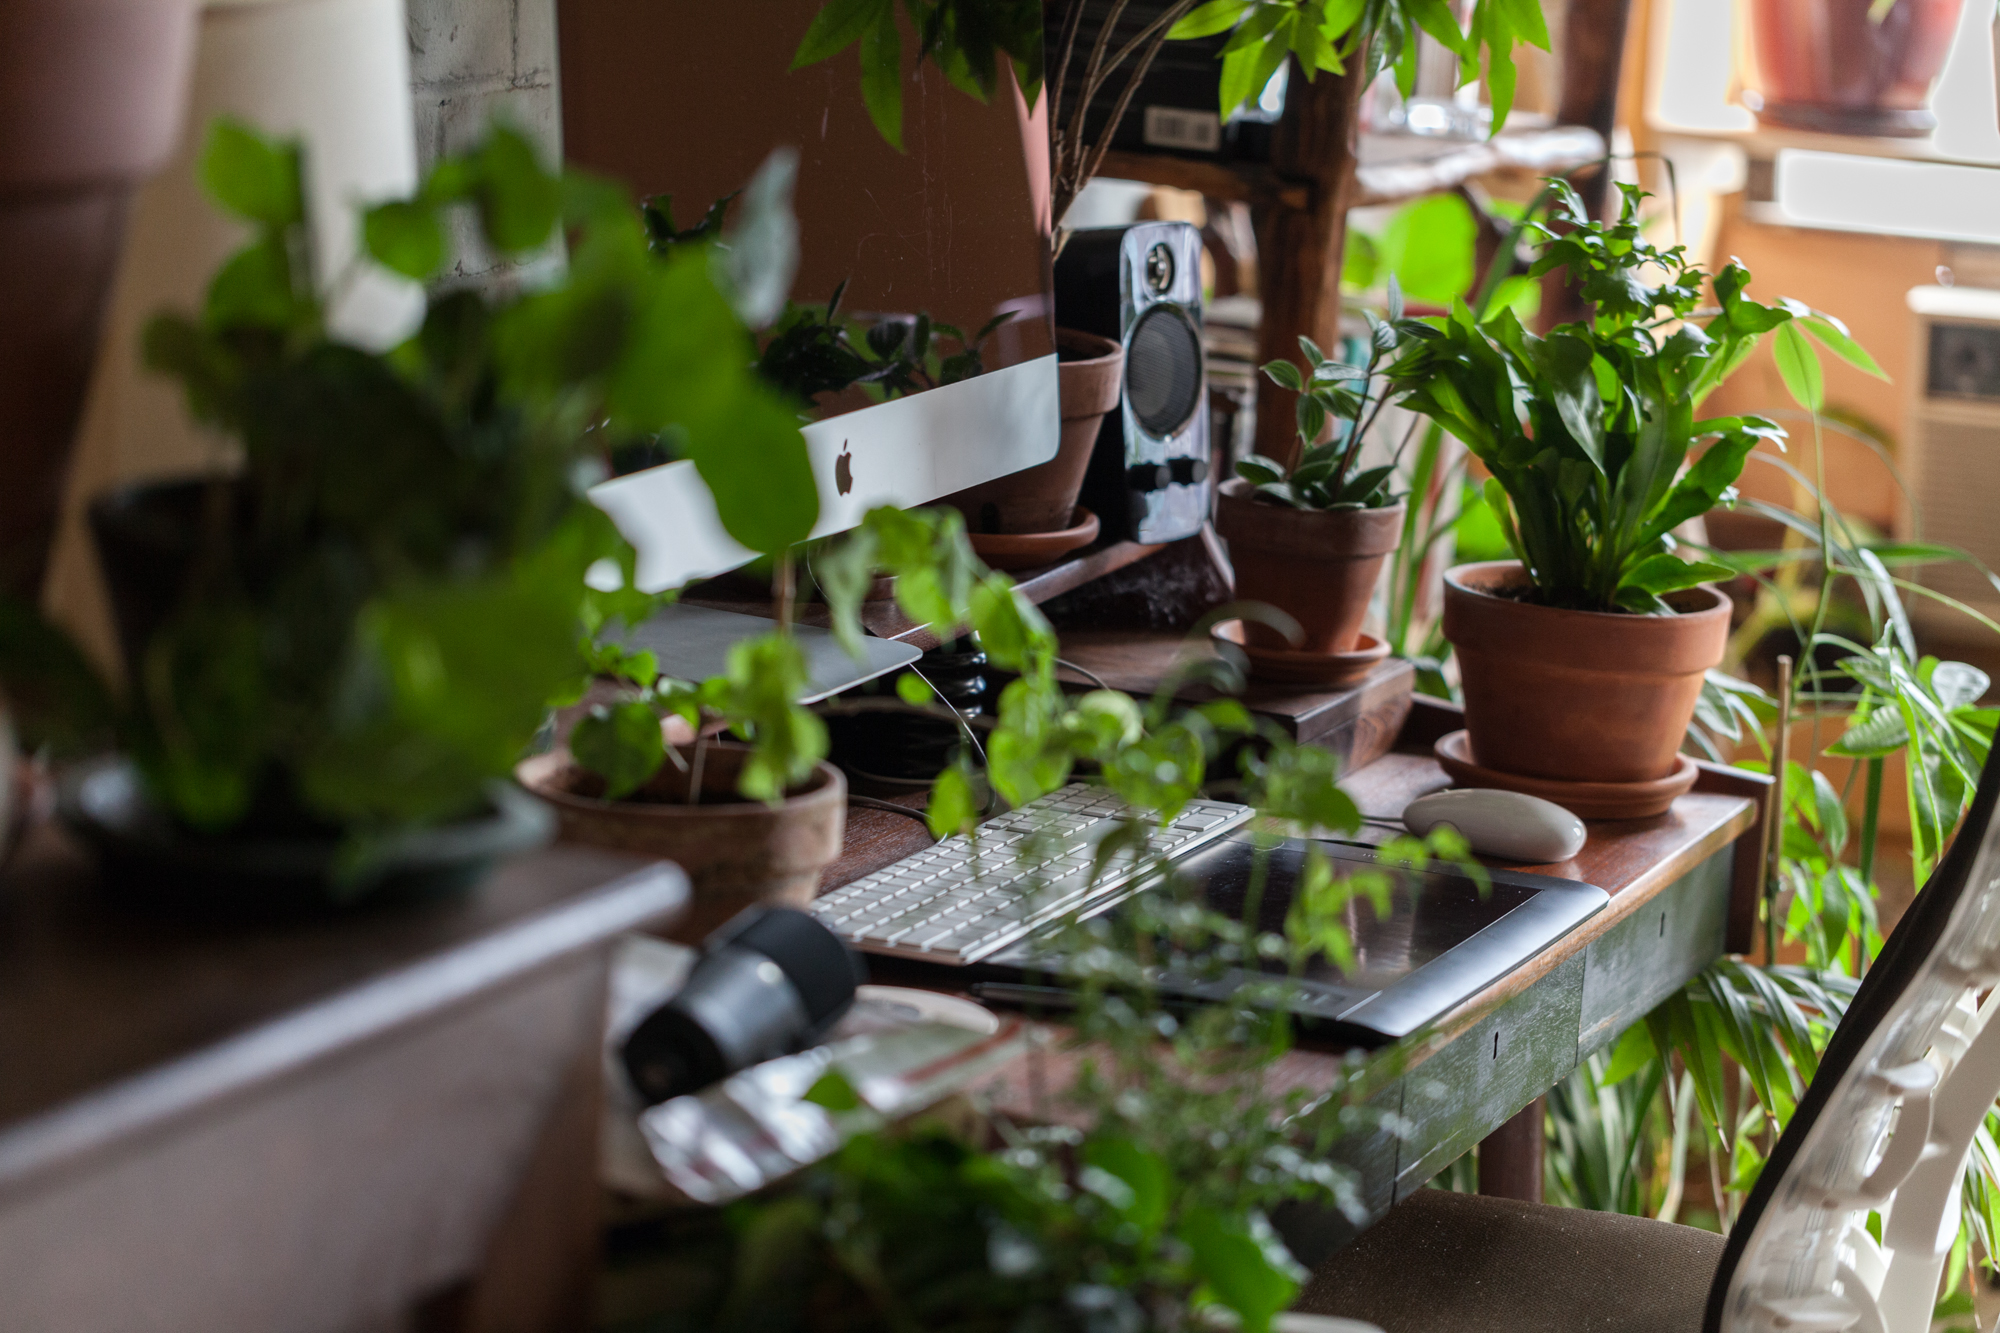 I often use terracotta clay pots for my plants for a variety of reasons, namely because they are affordable and also help wick away moisture and aerate the soil. This is a shot from my workspace.